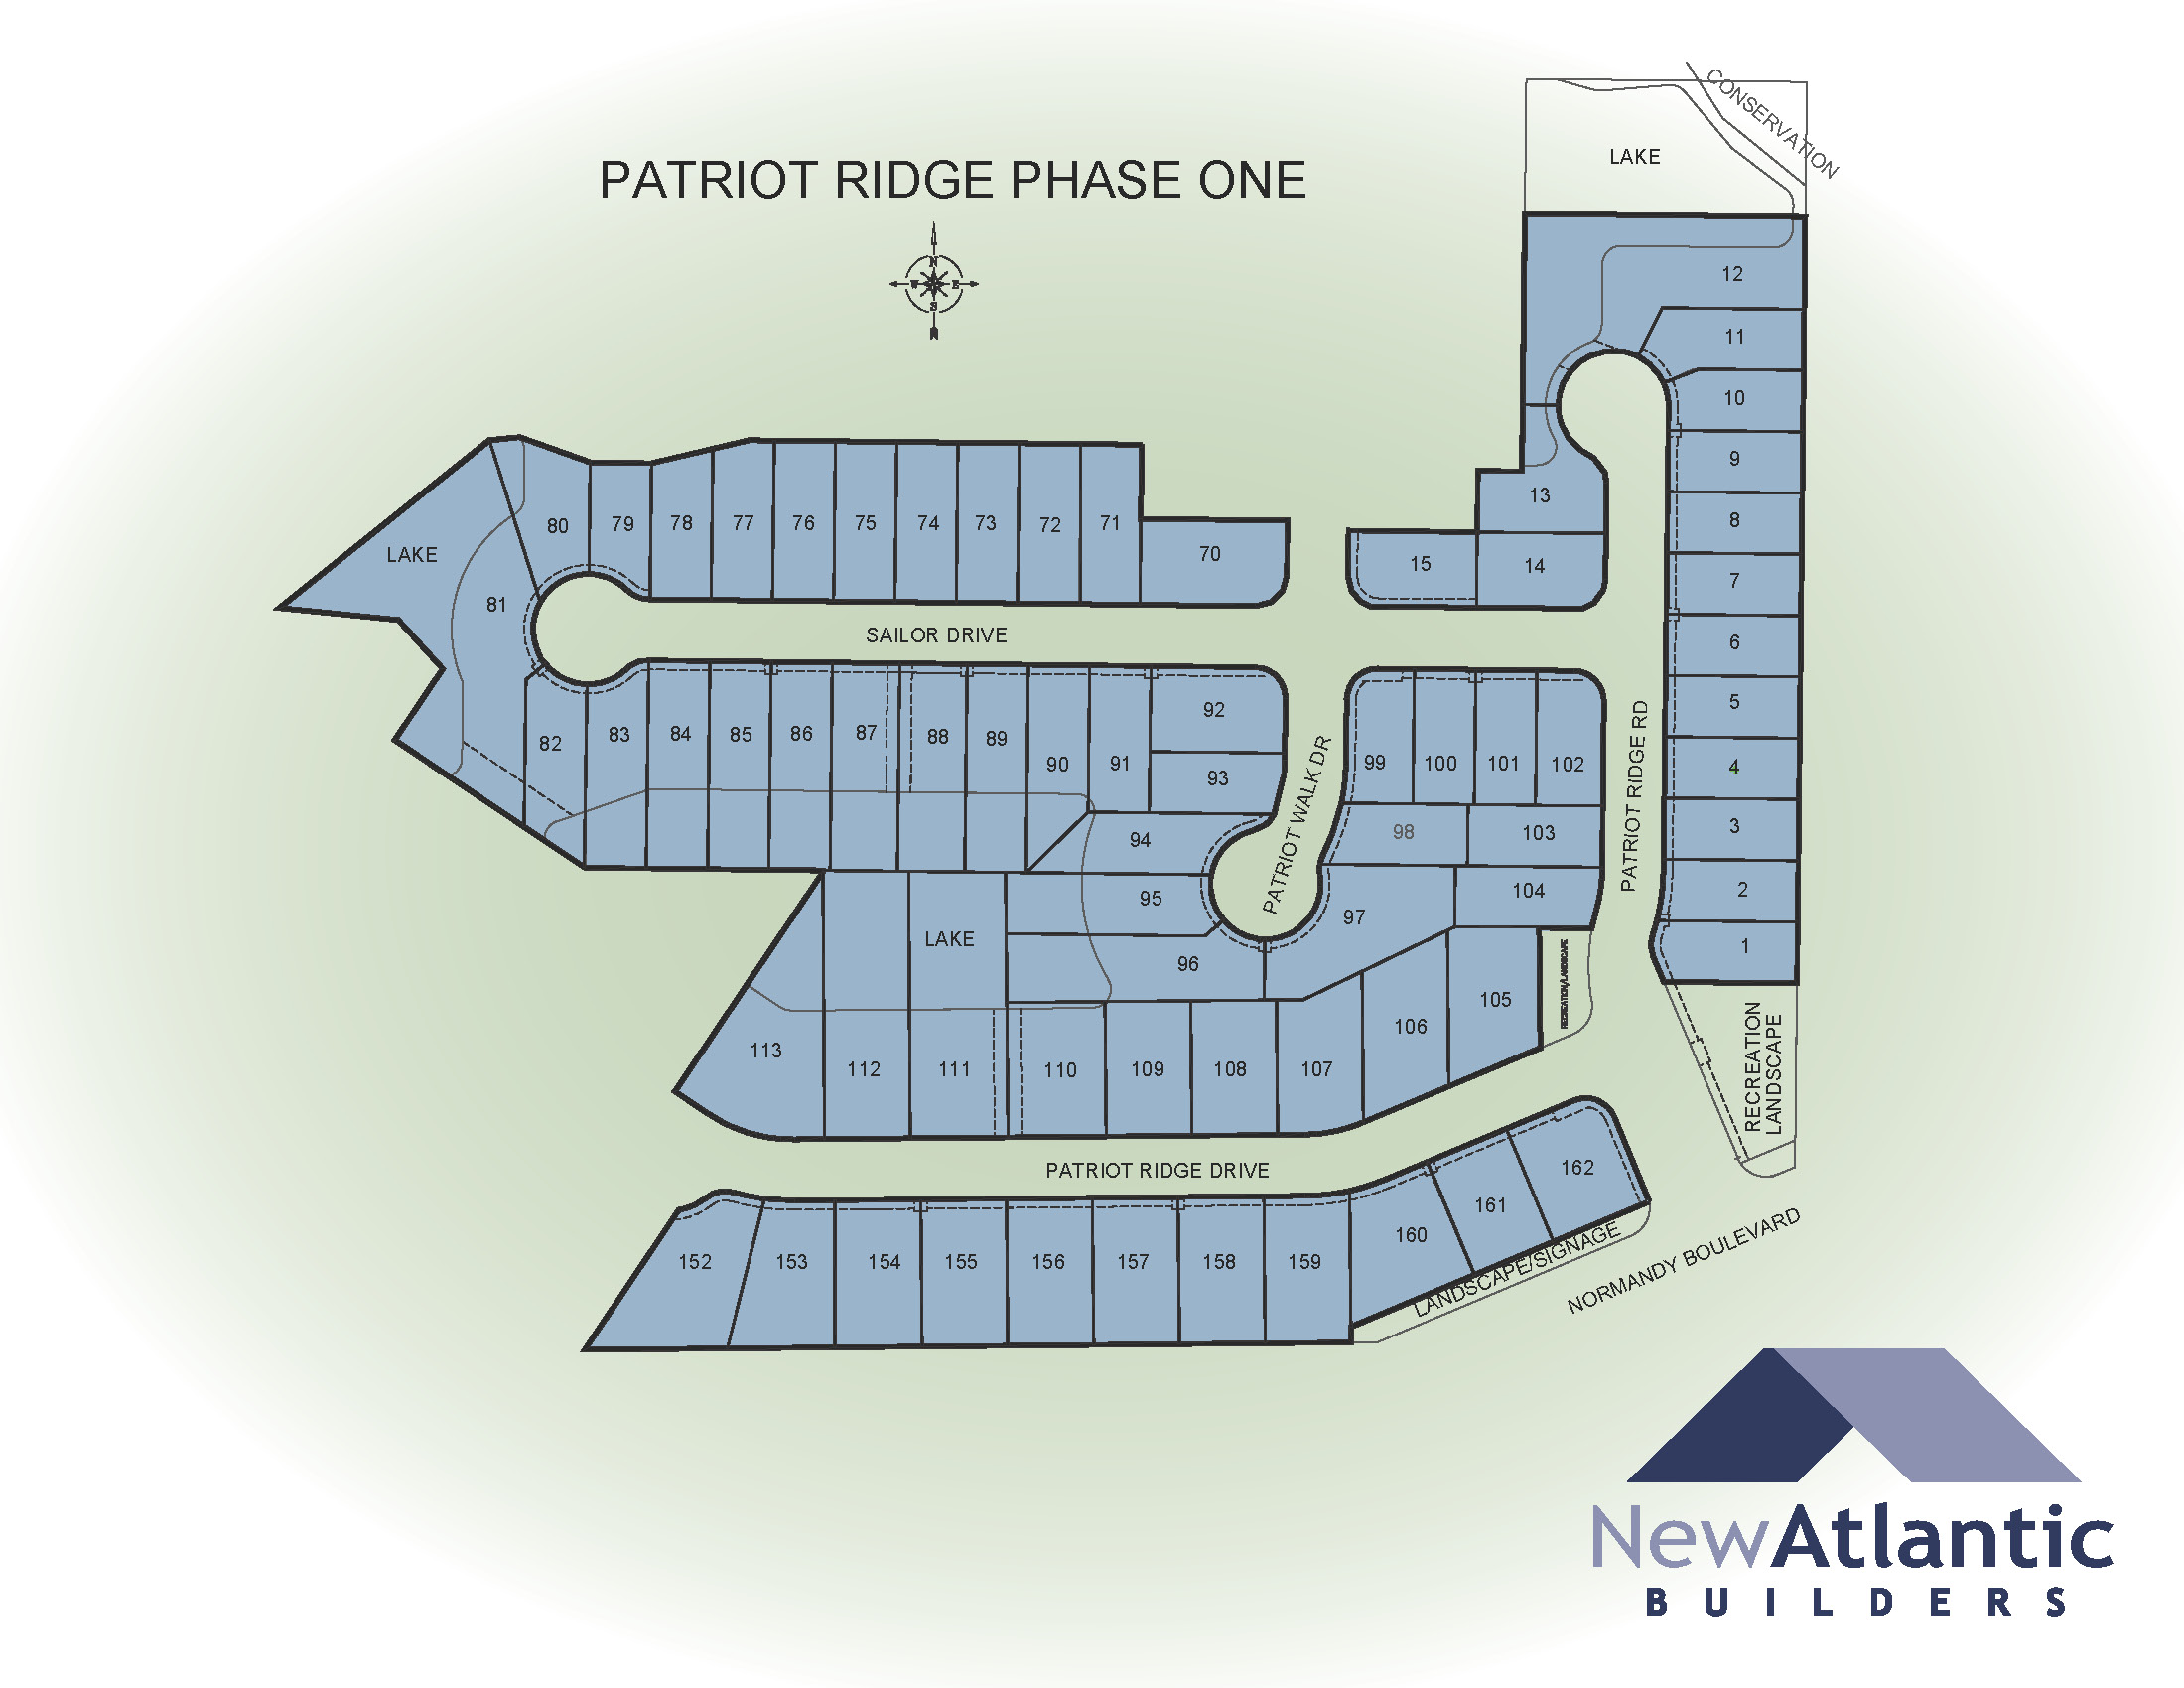 5053_patriot_ridge_phase_one_site_map